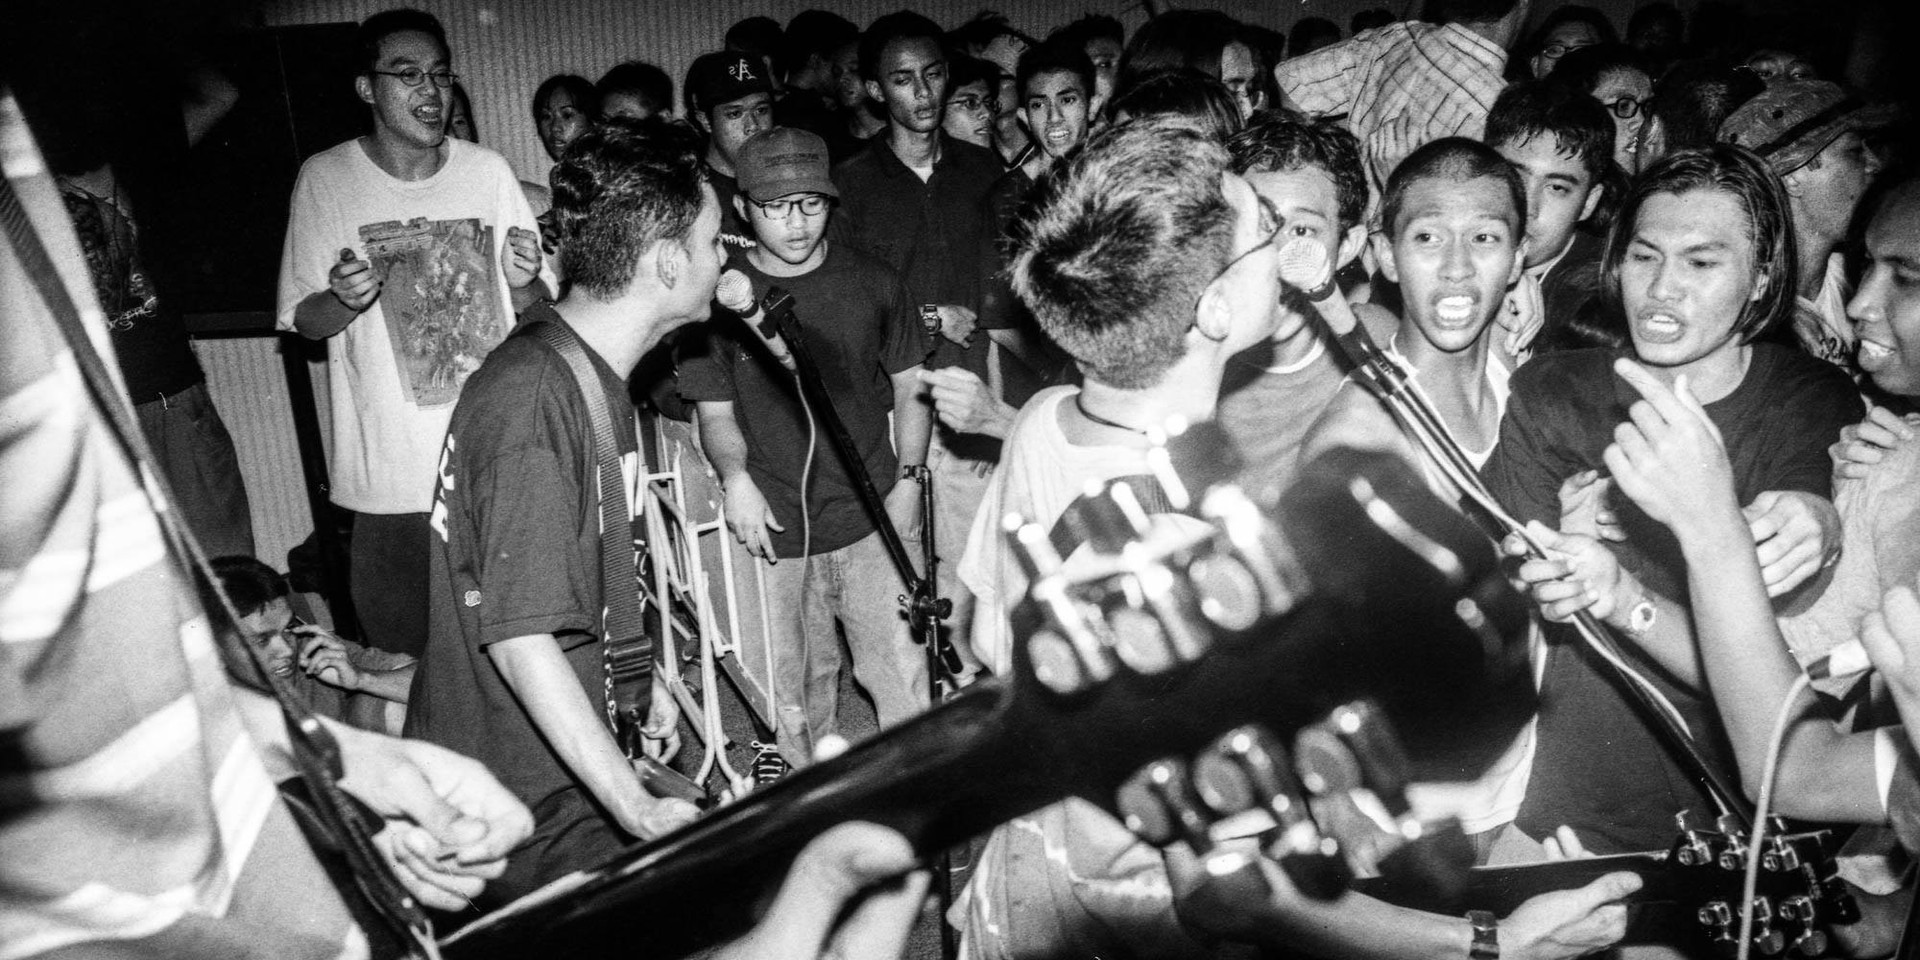 A pictorial guide to the raw energy of Singapore's underground hardcore punk scene in the 1990s